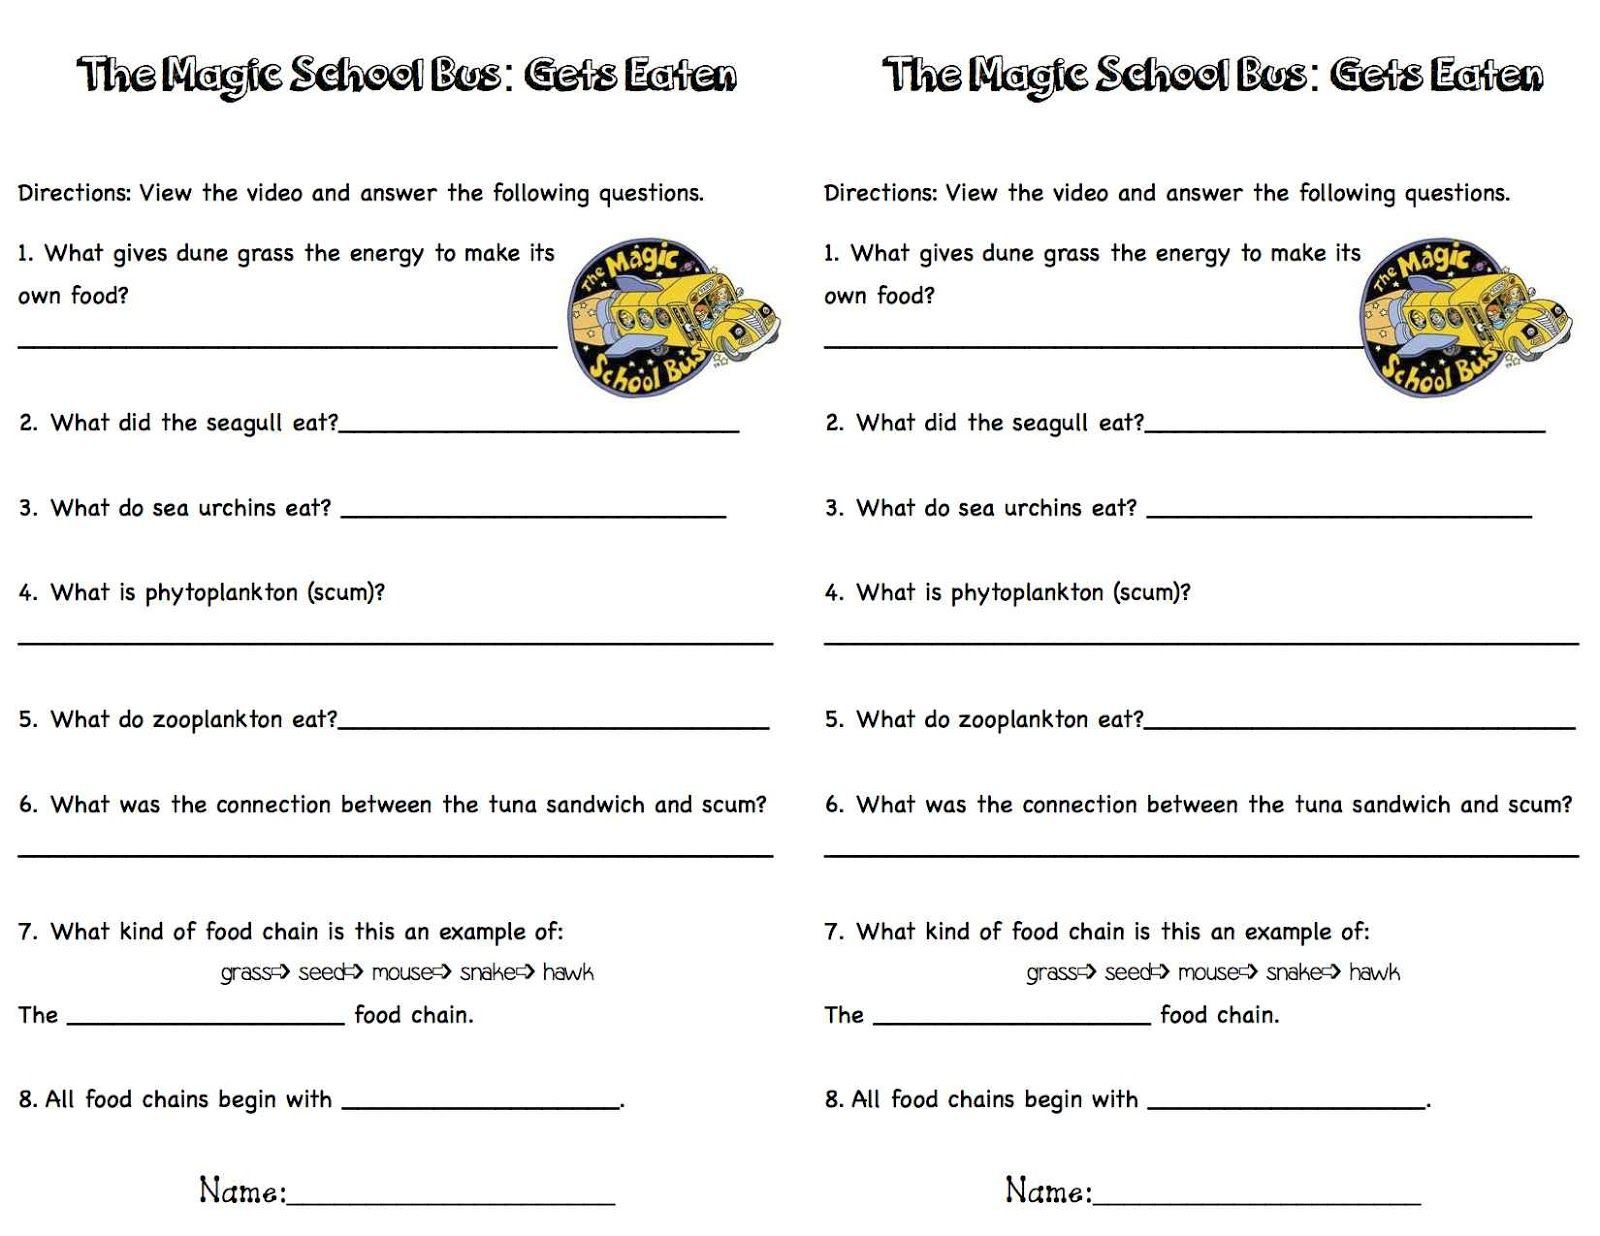 Free Worksheet Magic School Bus Worksheets magic school bus gets eaten worksheet laveyla com 17 best images about food webs on pinterest cause and effect